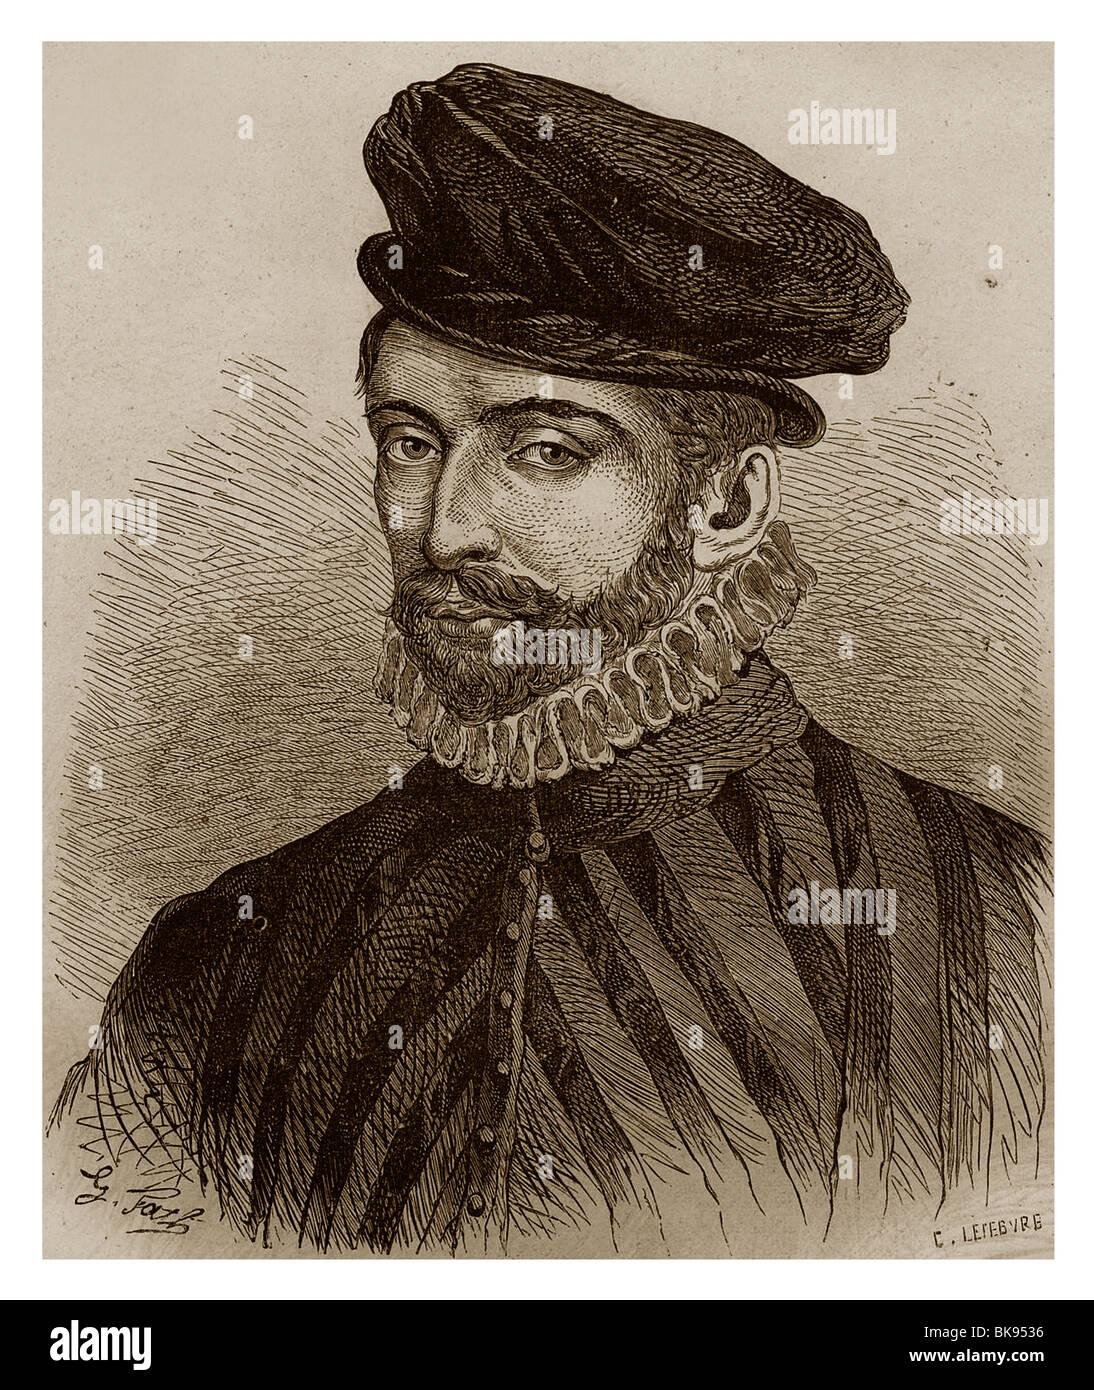 Nicolas IV of Neufville, Lord of Villeroy (1542-1617): Important secretary of State during the reign of Henry IV - Stock Image